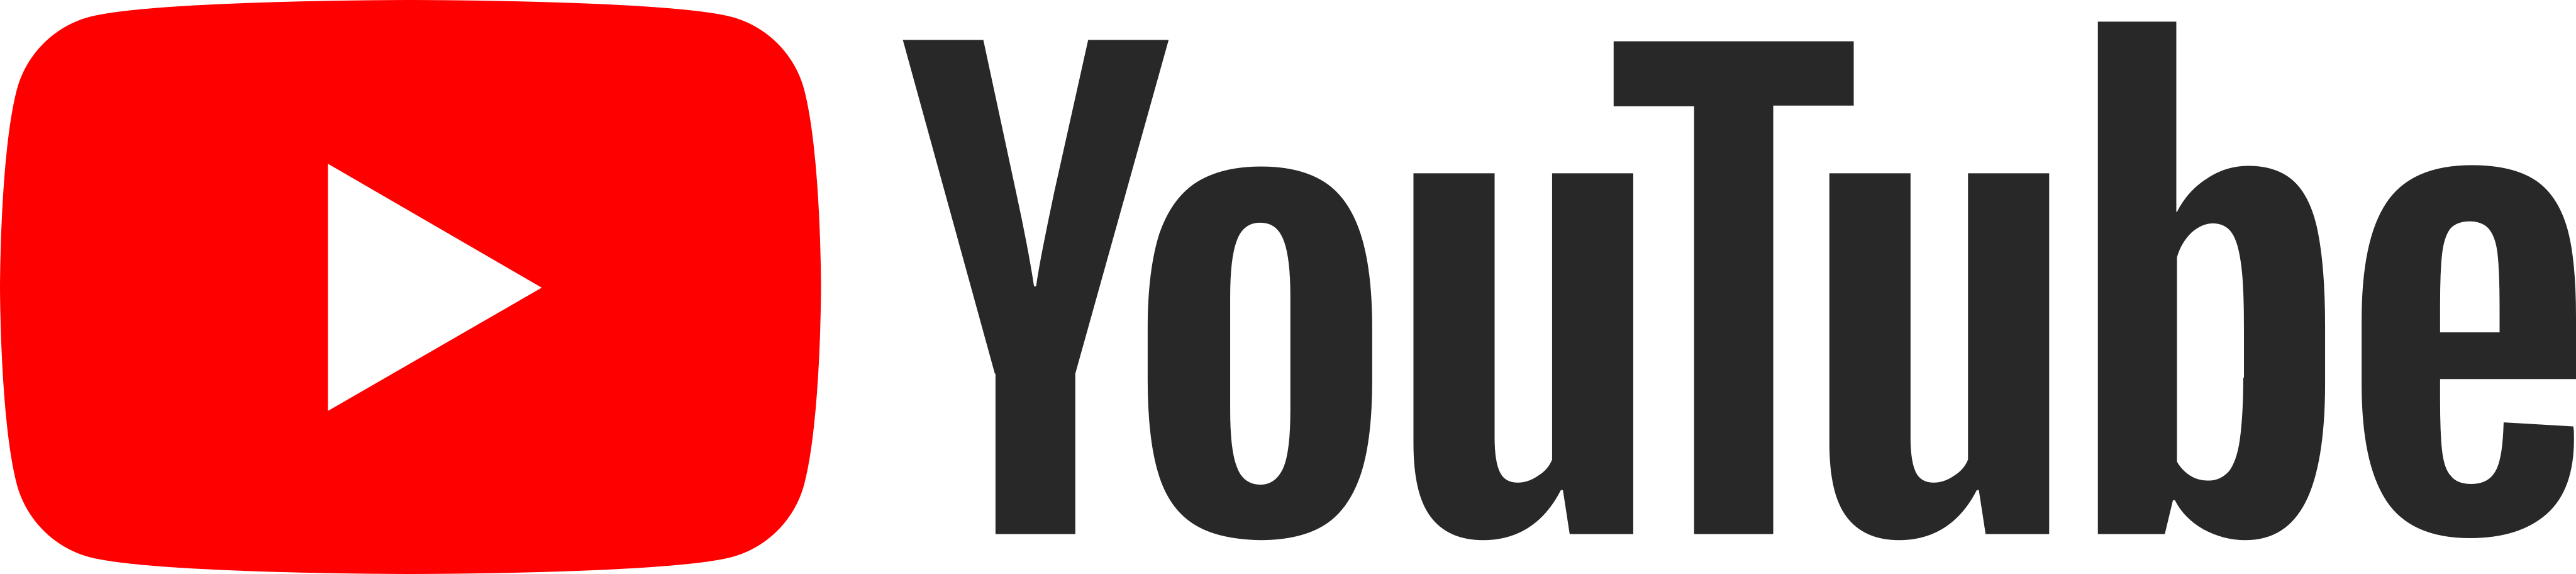 http://c-talks.com.br/wp-content/uploads/2020/11/youtube-logo-9.png